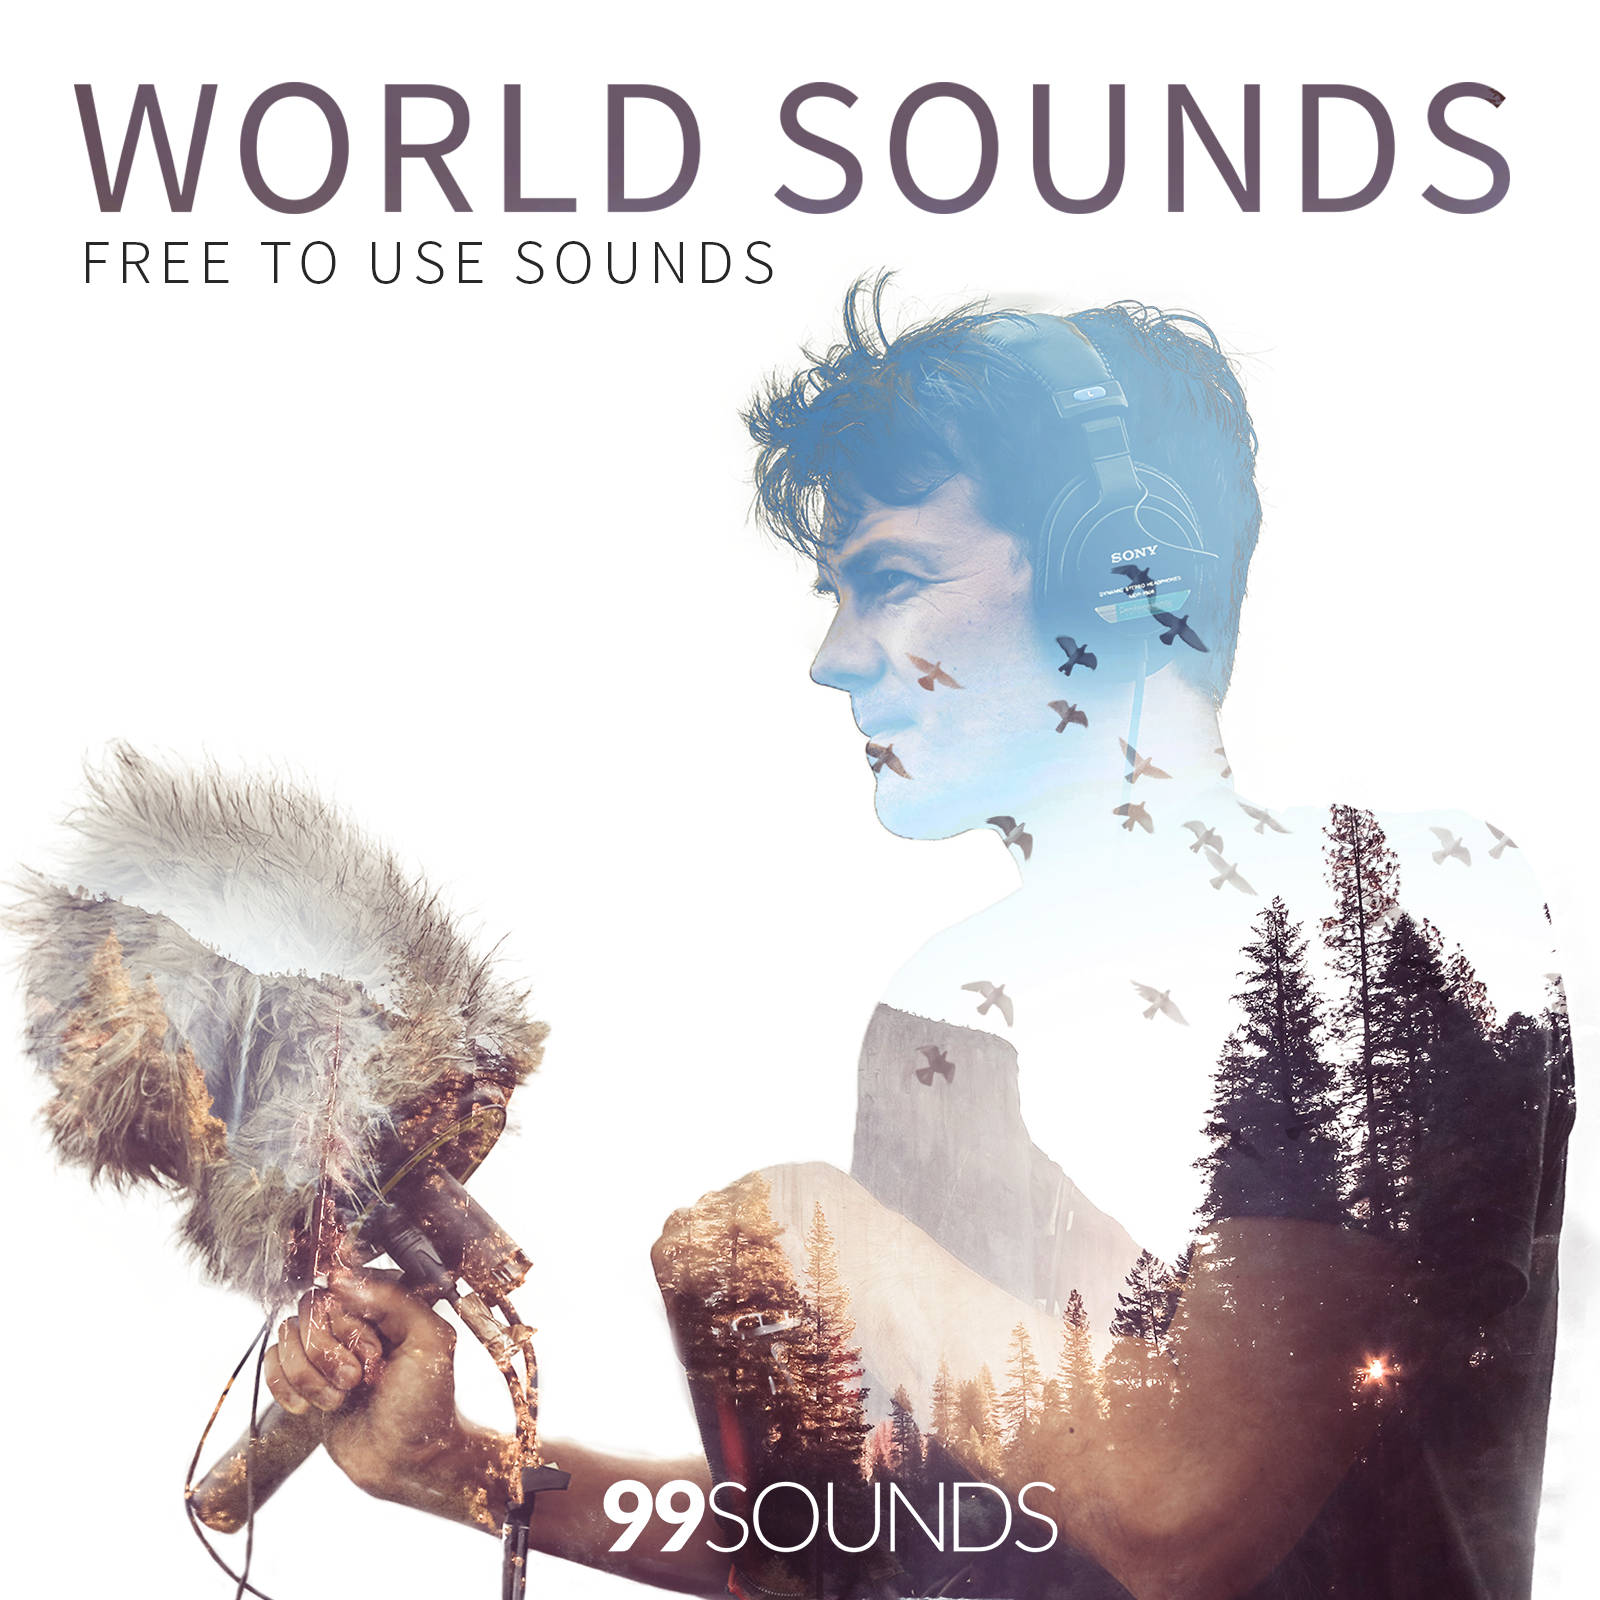 World Sounds